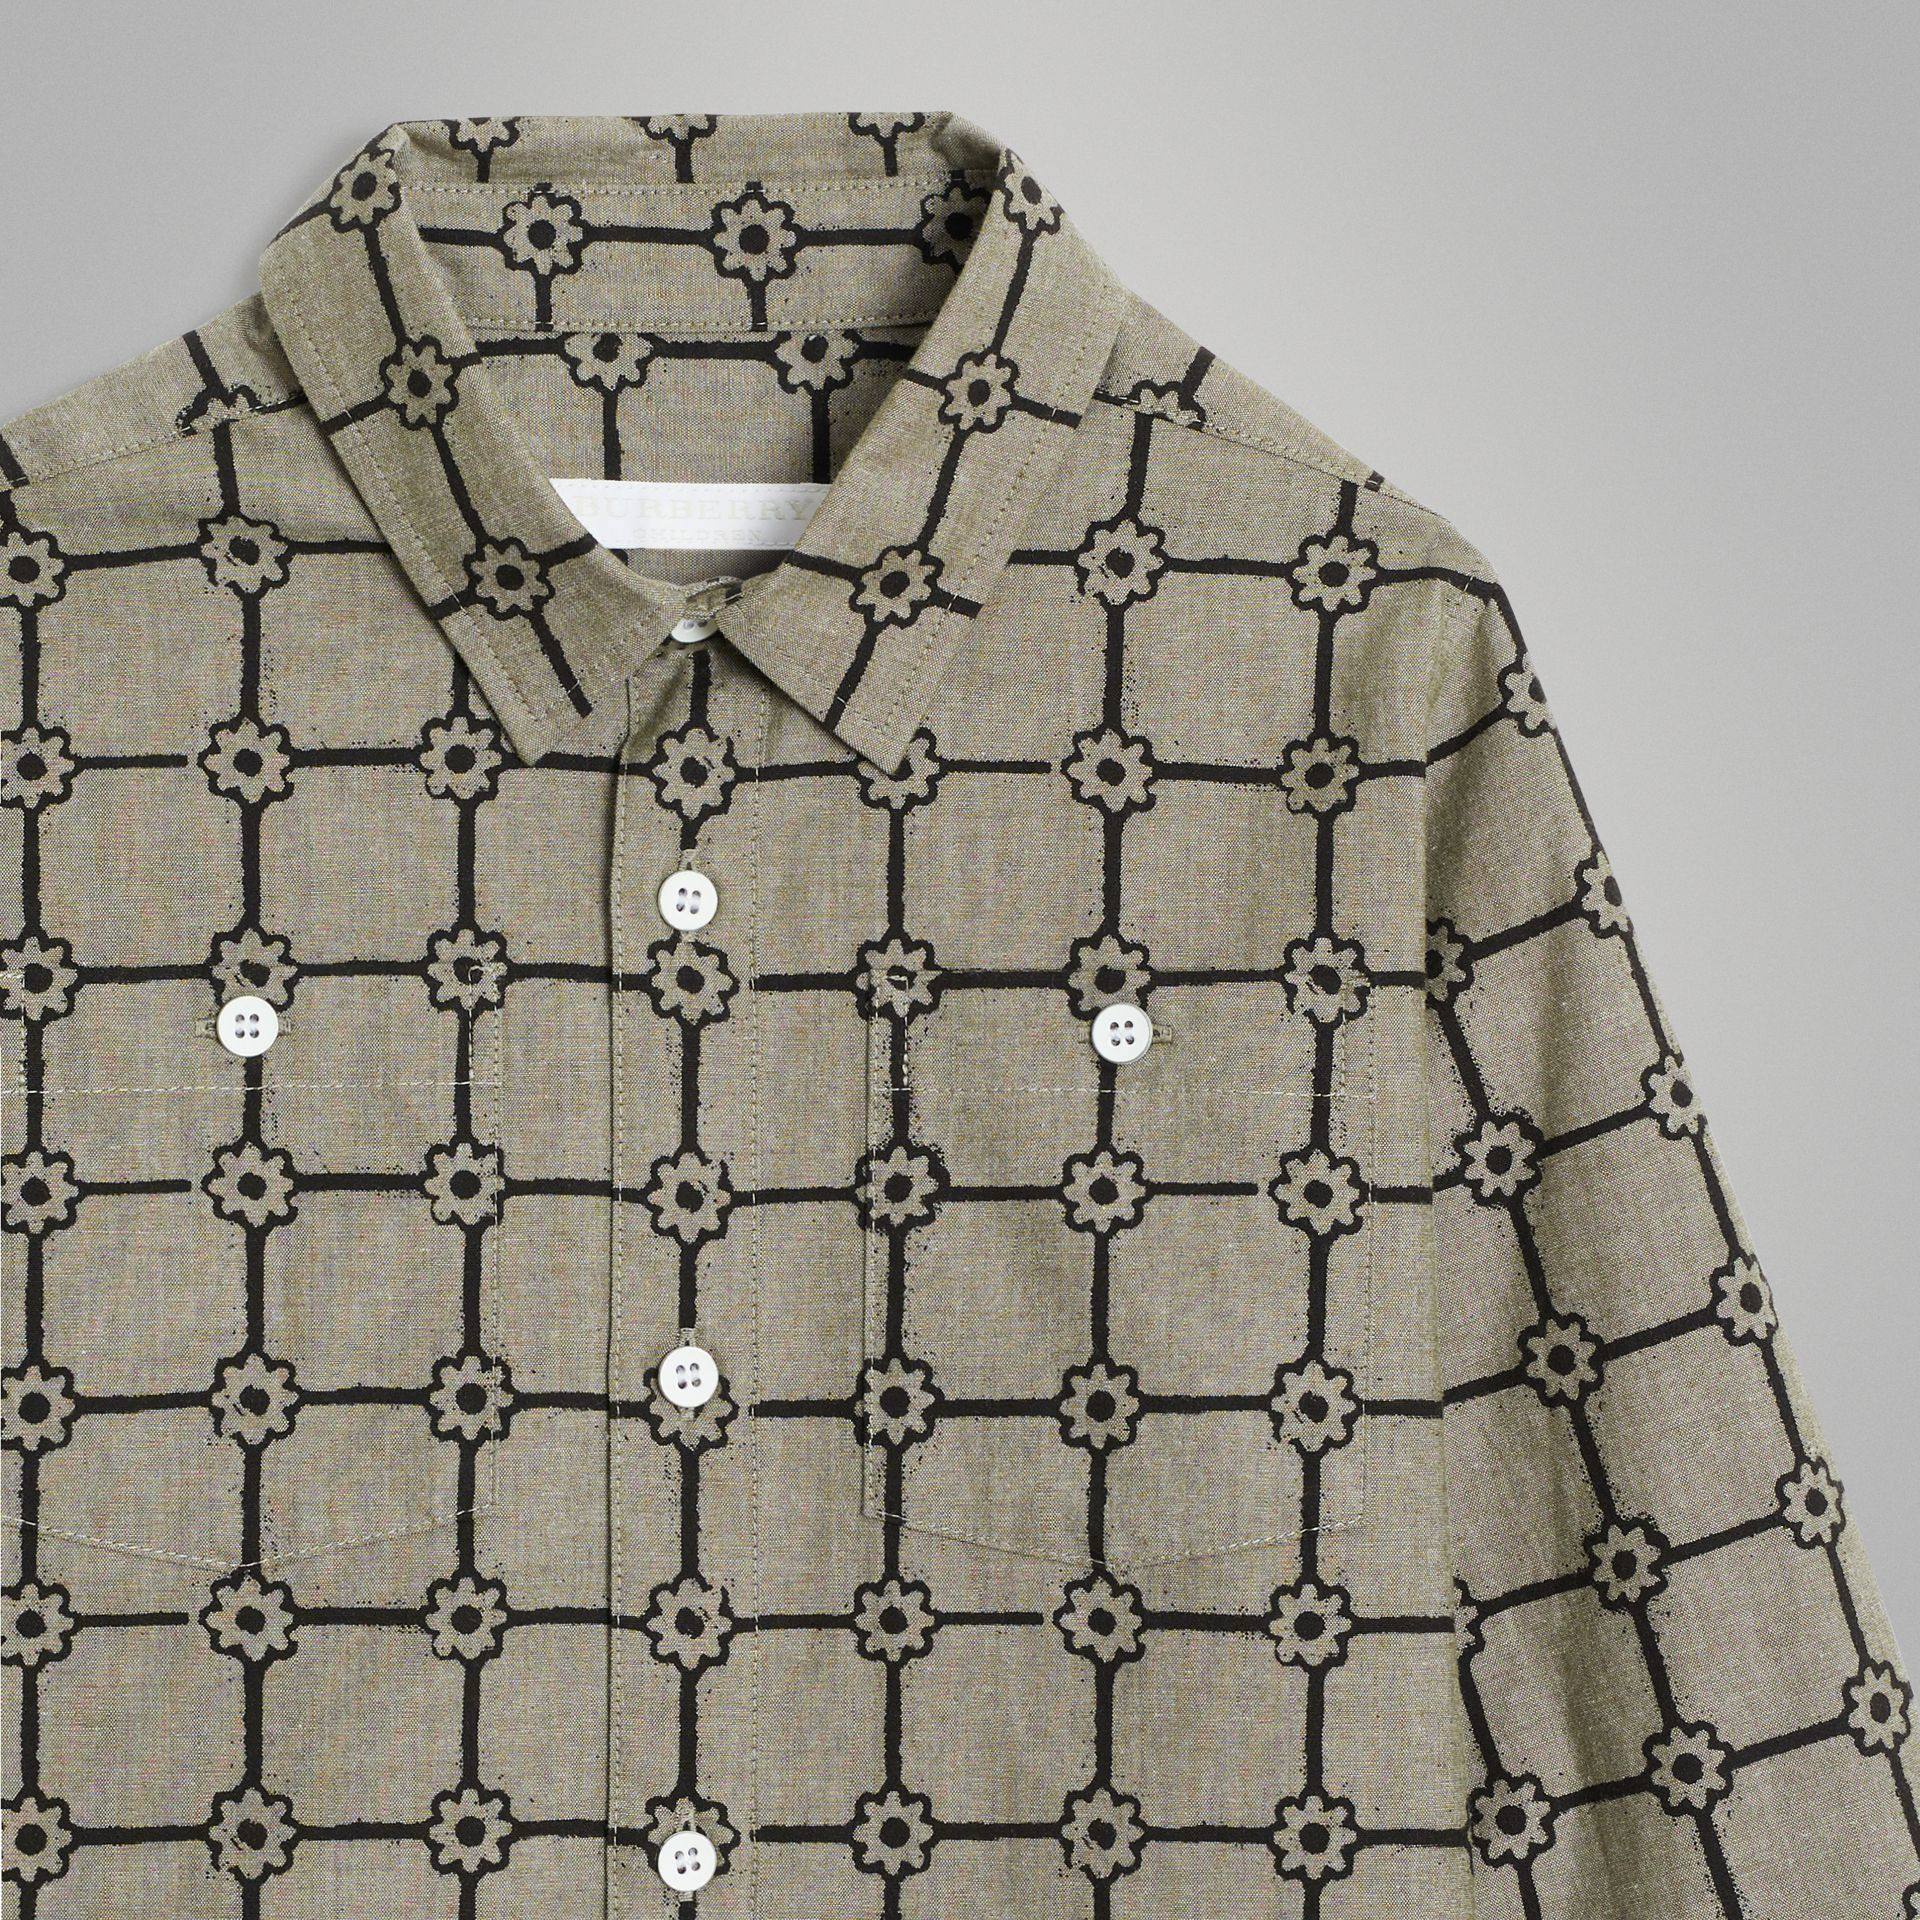 Flower Print Cotton Shirt in Khaki | Burberry - gallery image 4